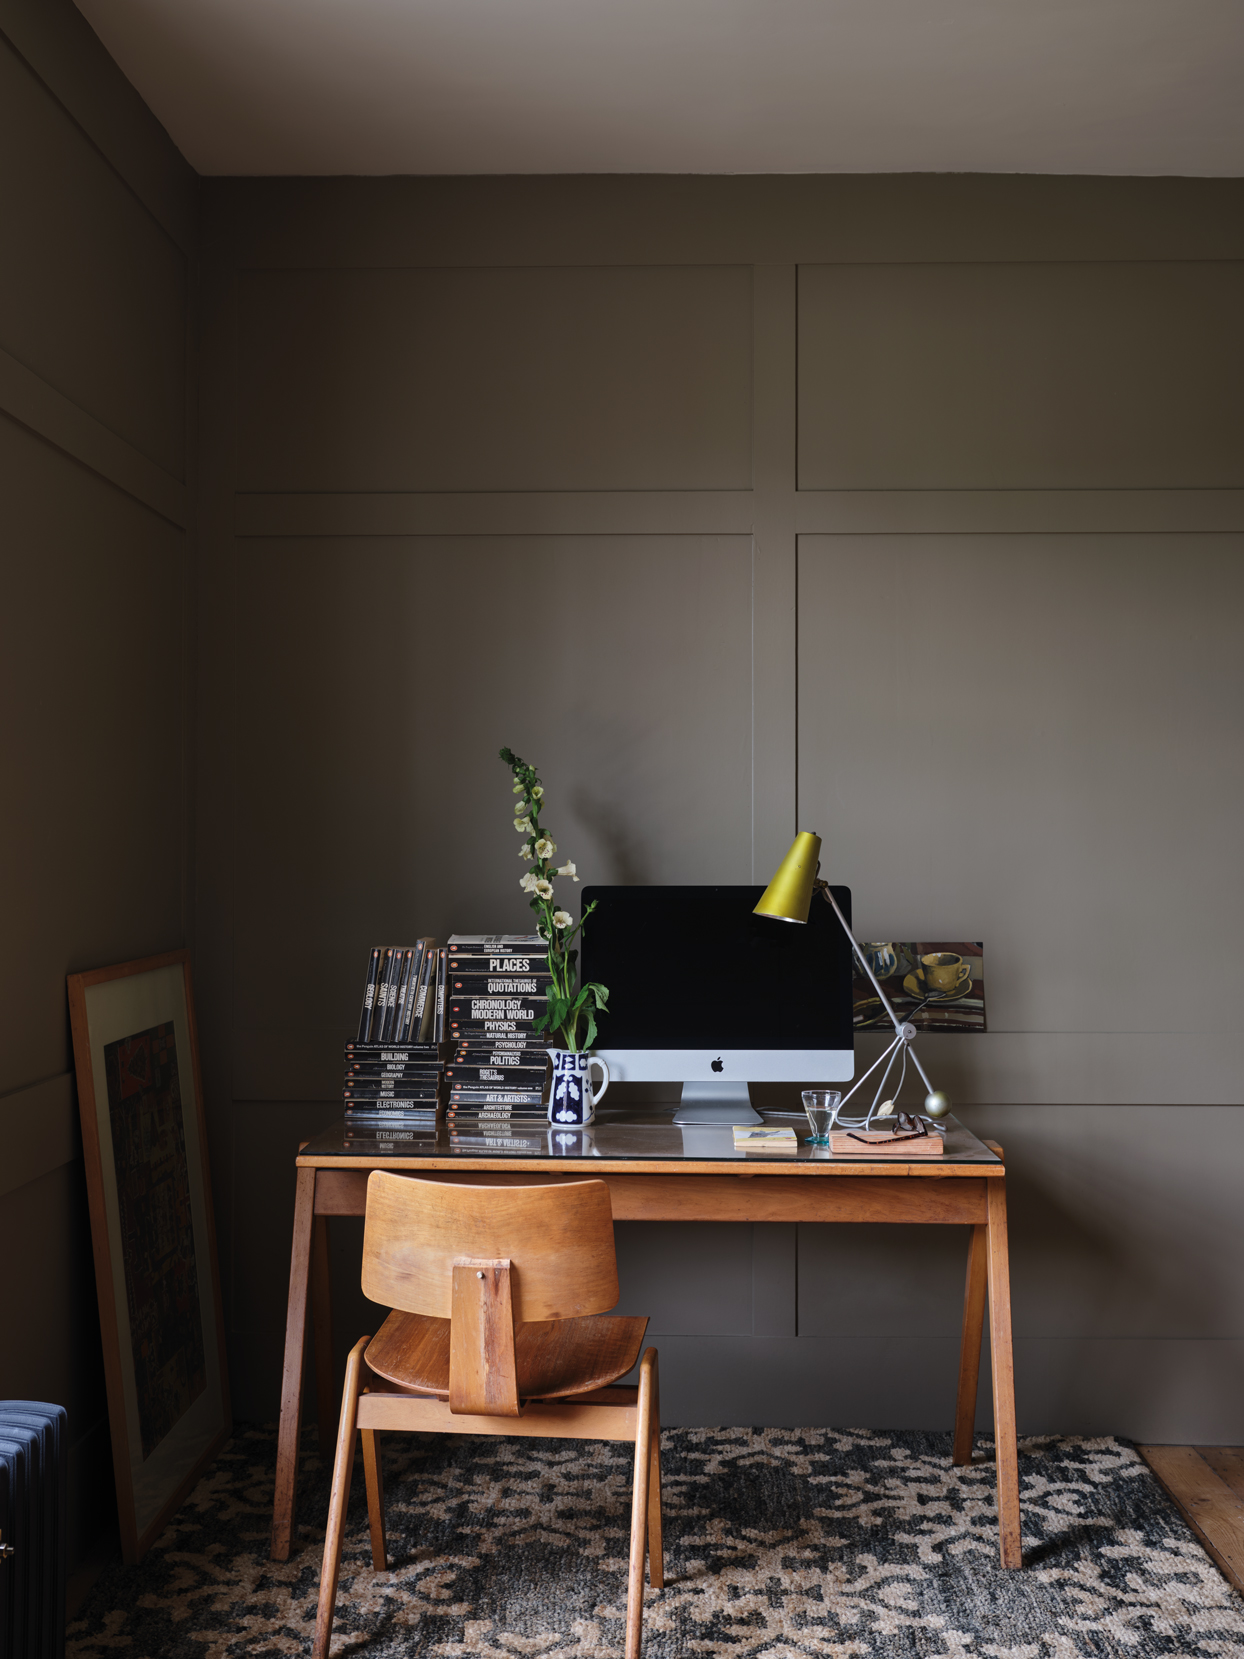 wooden desk in brown-painted at home office